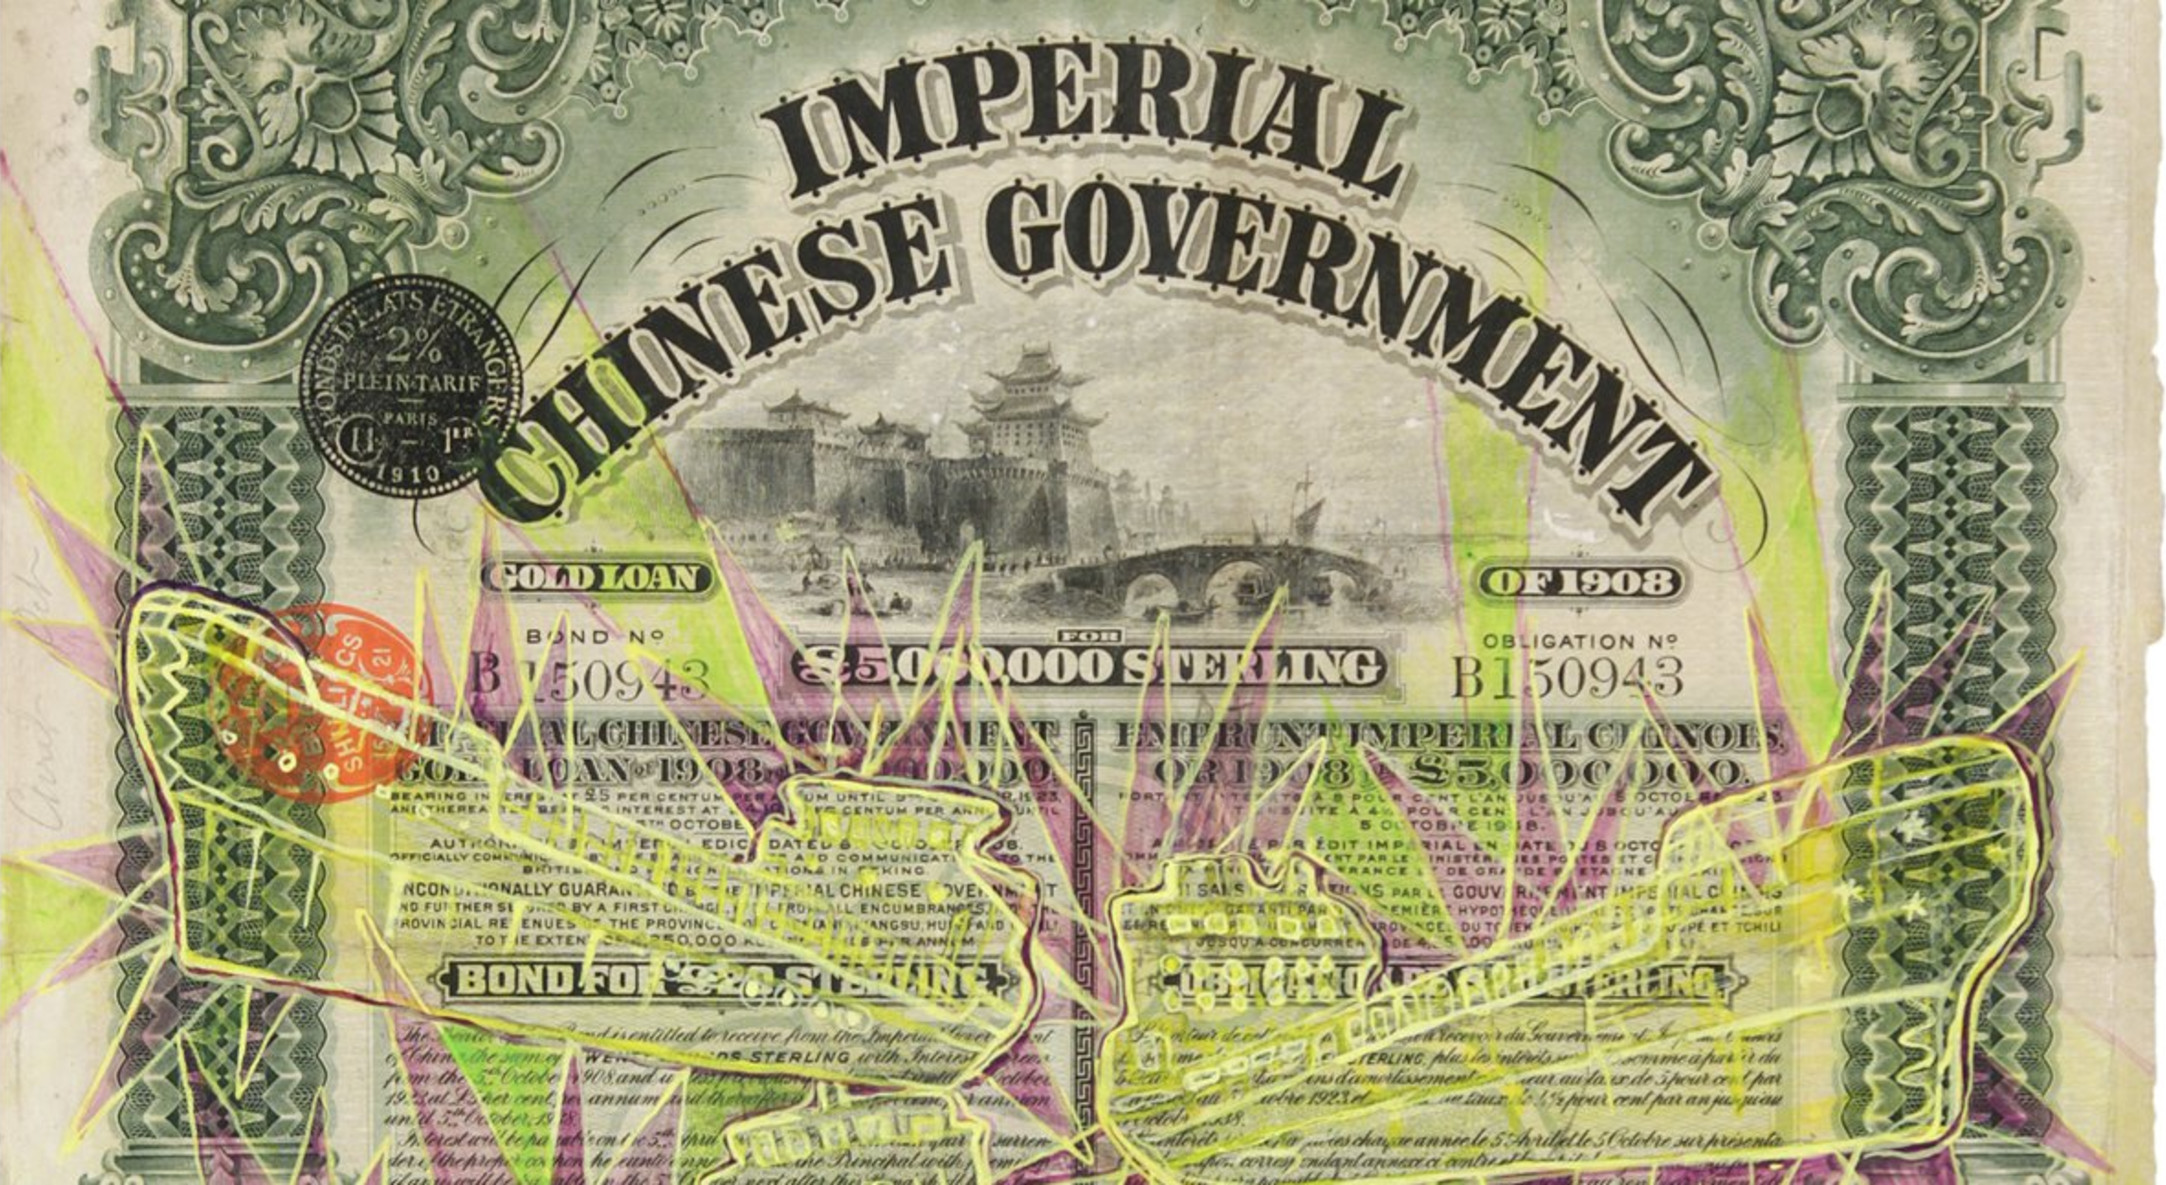 Detail of Hew Locke Imperial Chinese Government, 2013, Acrylic on antique paper share certificate, 38 x 28 cm, 15 x 11 1/8 in, Framed: 44.3 x 35.2 x 4.1 cm, 17 7/16 x 13 7/8 x 1 9/16 in